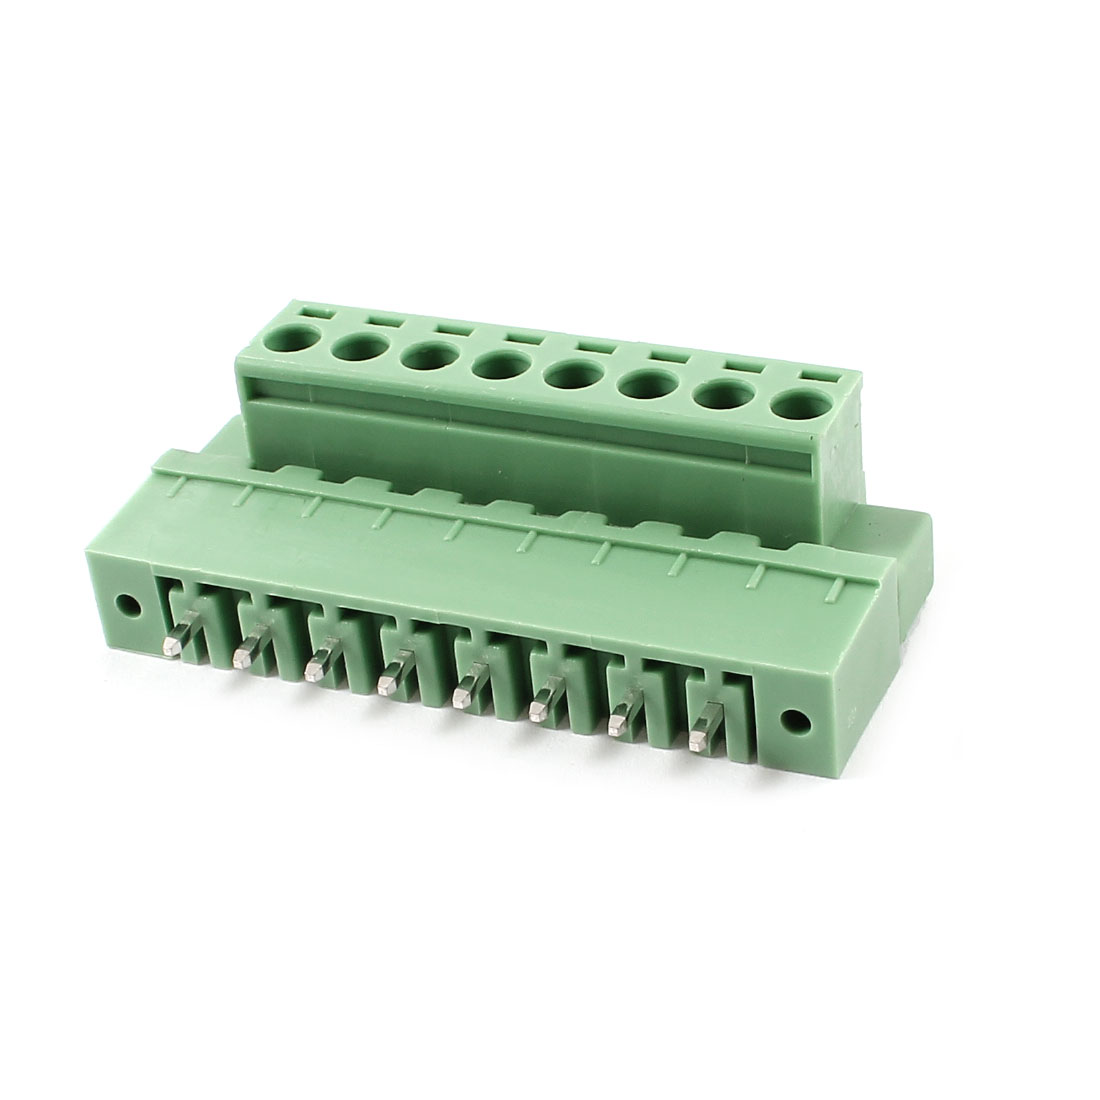 Pair AC 300V 10A 5.08mm 8 Pin Screw Pluggable Terminal Block Green